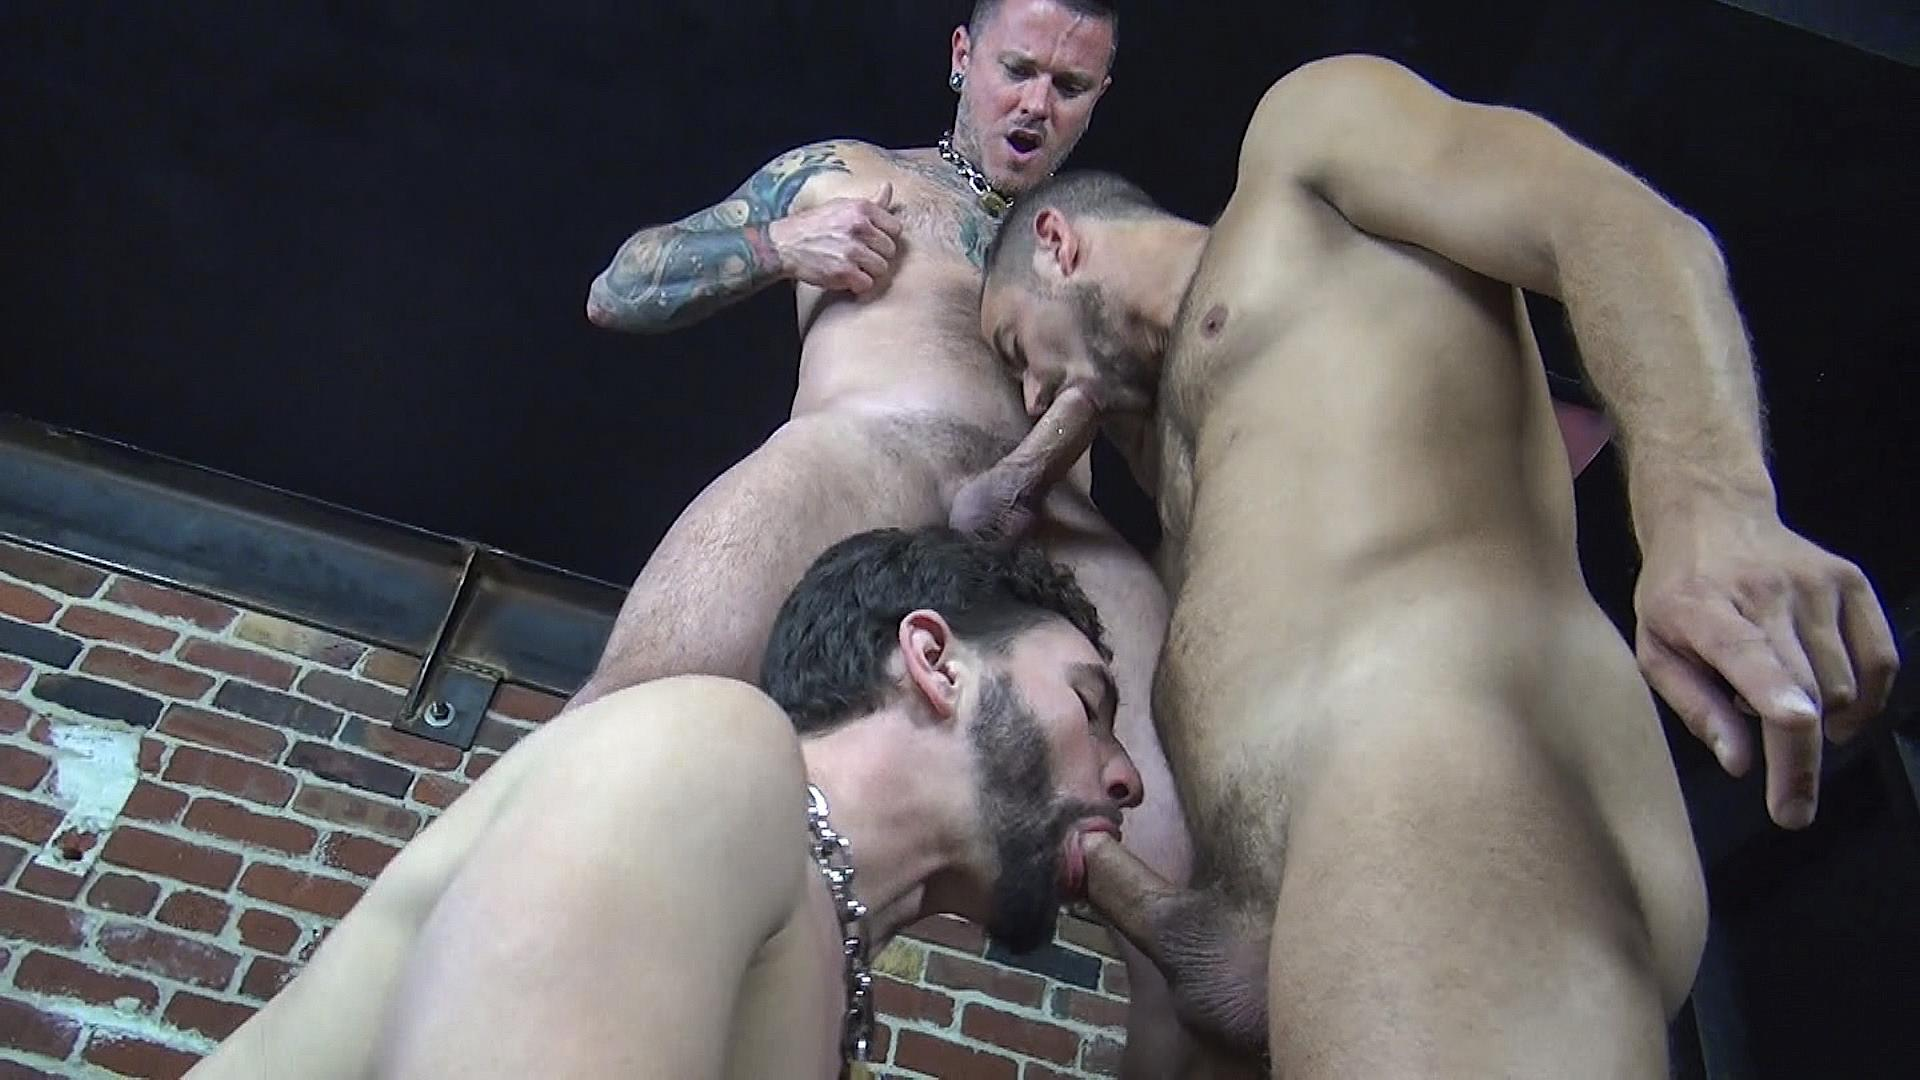 Raw Fuck Club Max Cameron and Jackson Fillmore and Leon Fox Bareback Double Penetration Amateur Gay Porn 10 Getting Double Penetrated Bareback By A Big Uncut Cock